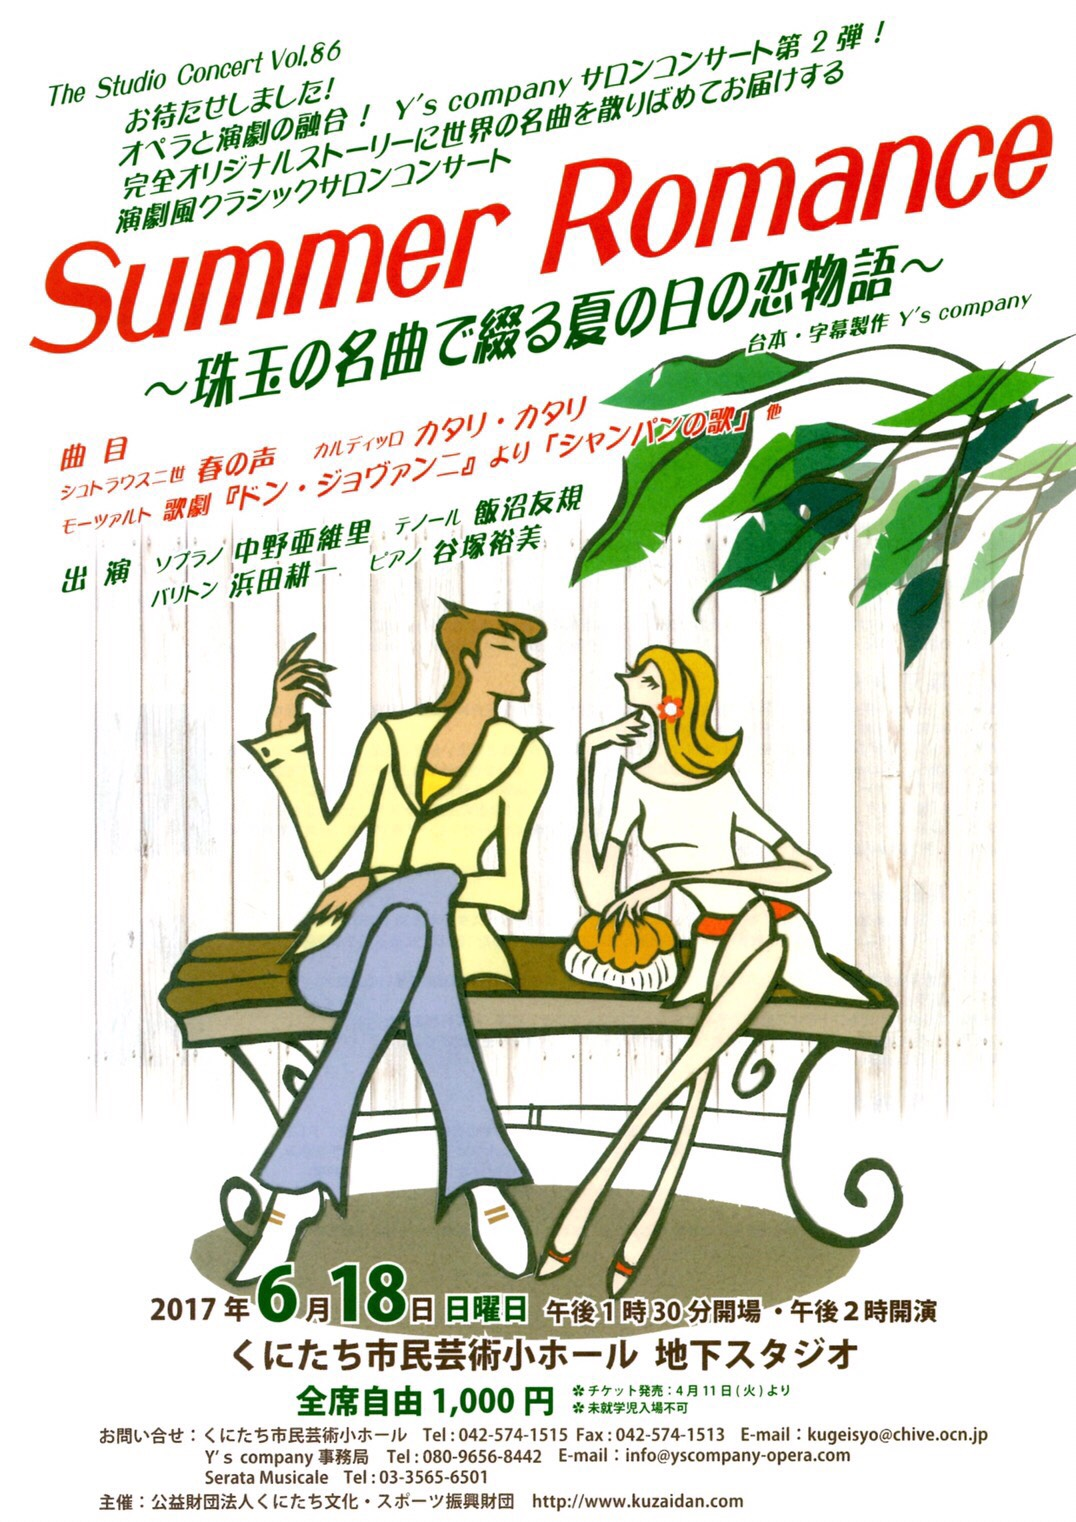 The Studio Concert Vol.86 Summer Romance